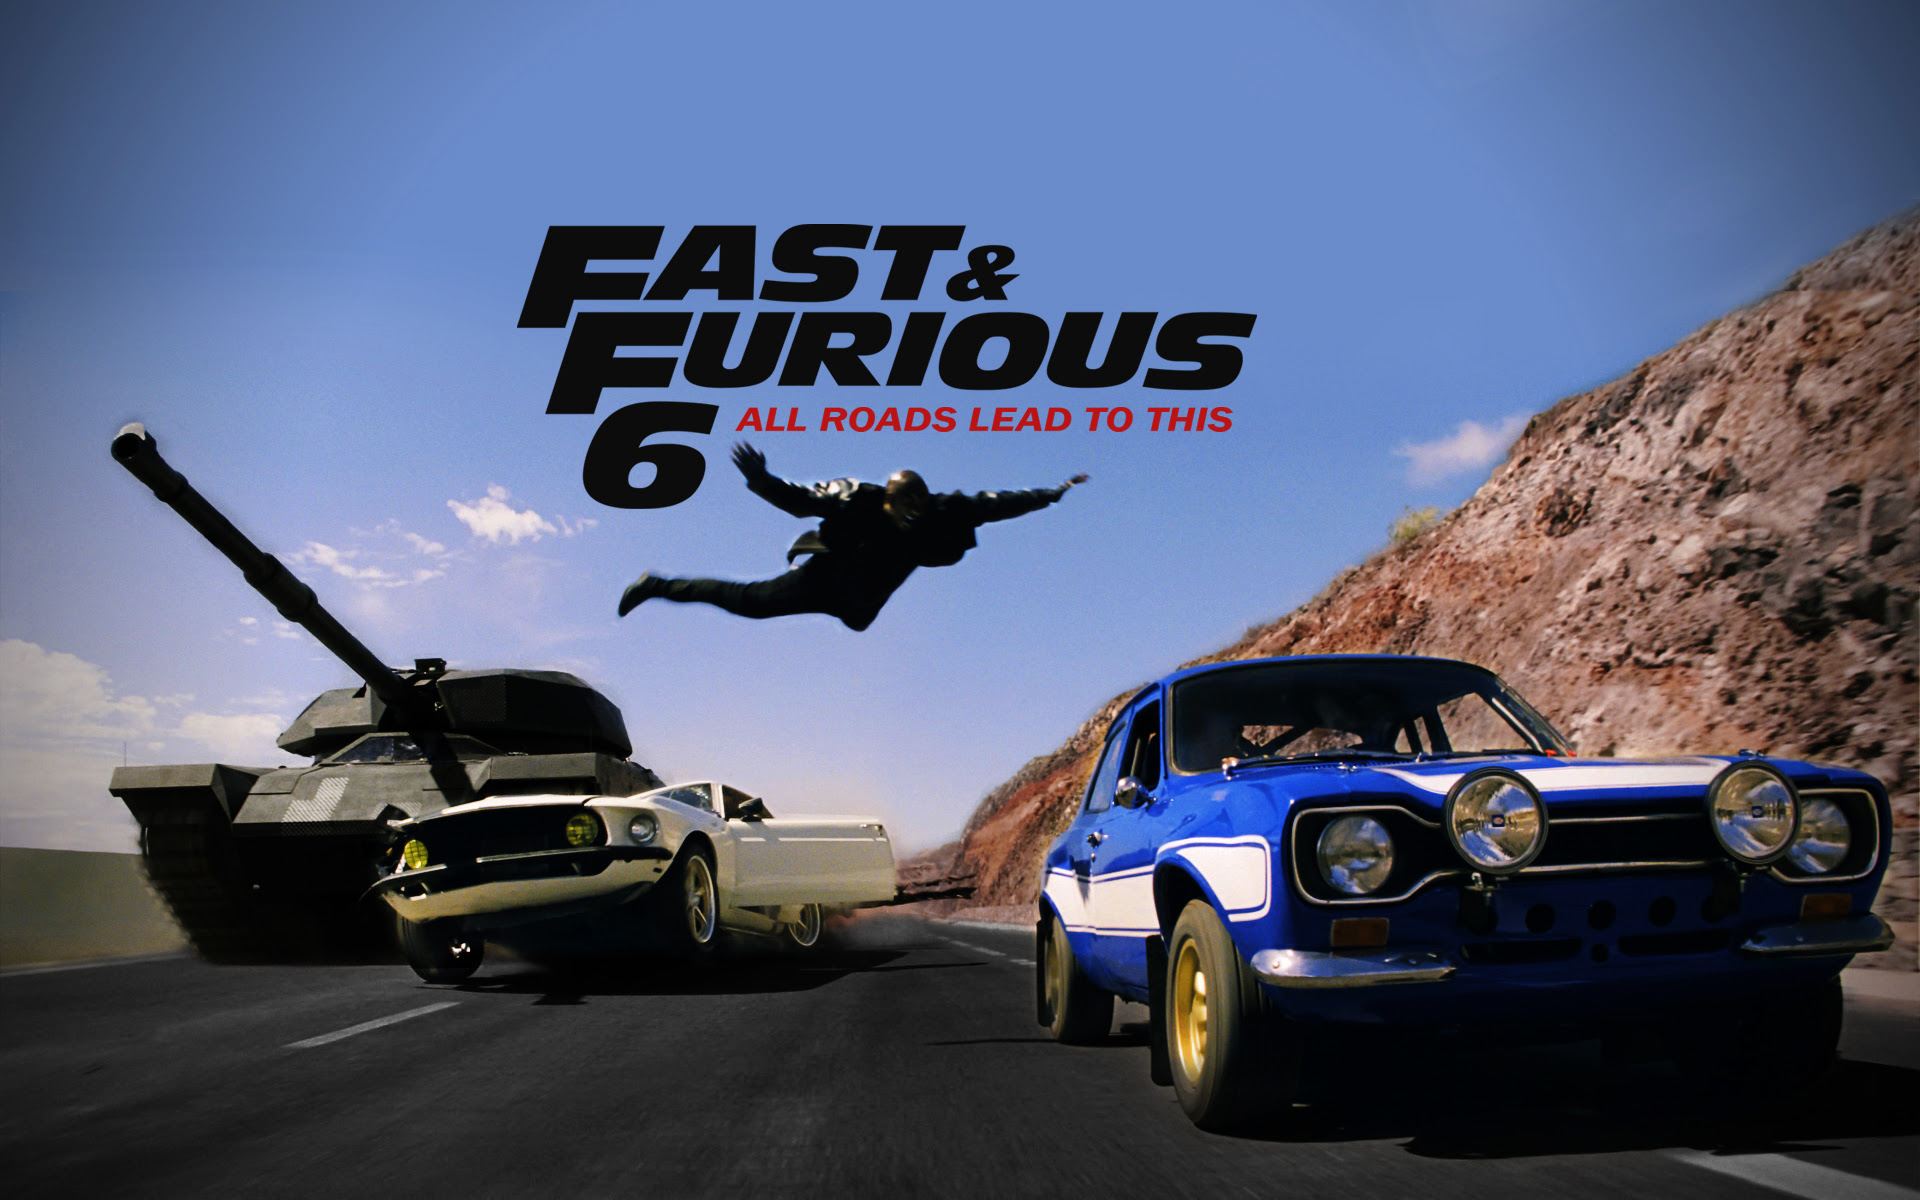 Tales from the Gloop  Curiouser and Furiouser  A Fast and Furious     Curiouser and Furiouser  A Fast and Furious Watch   Part 6  Fast and Furious  6